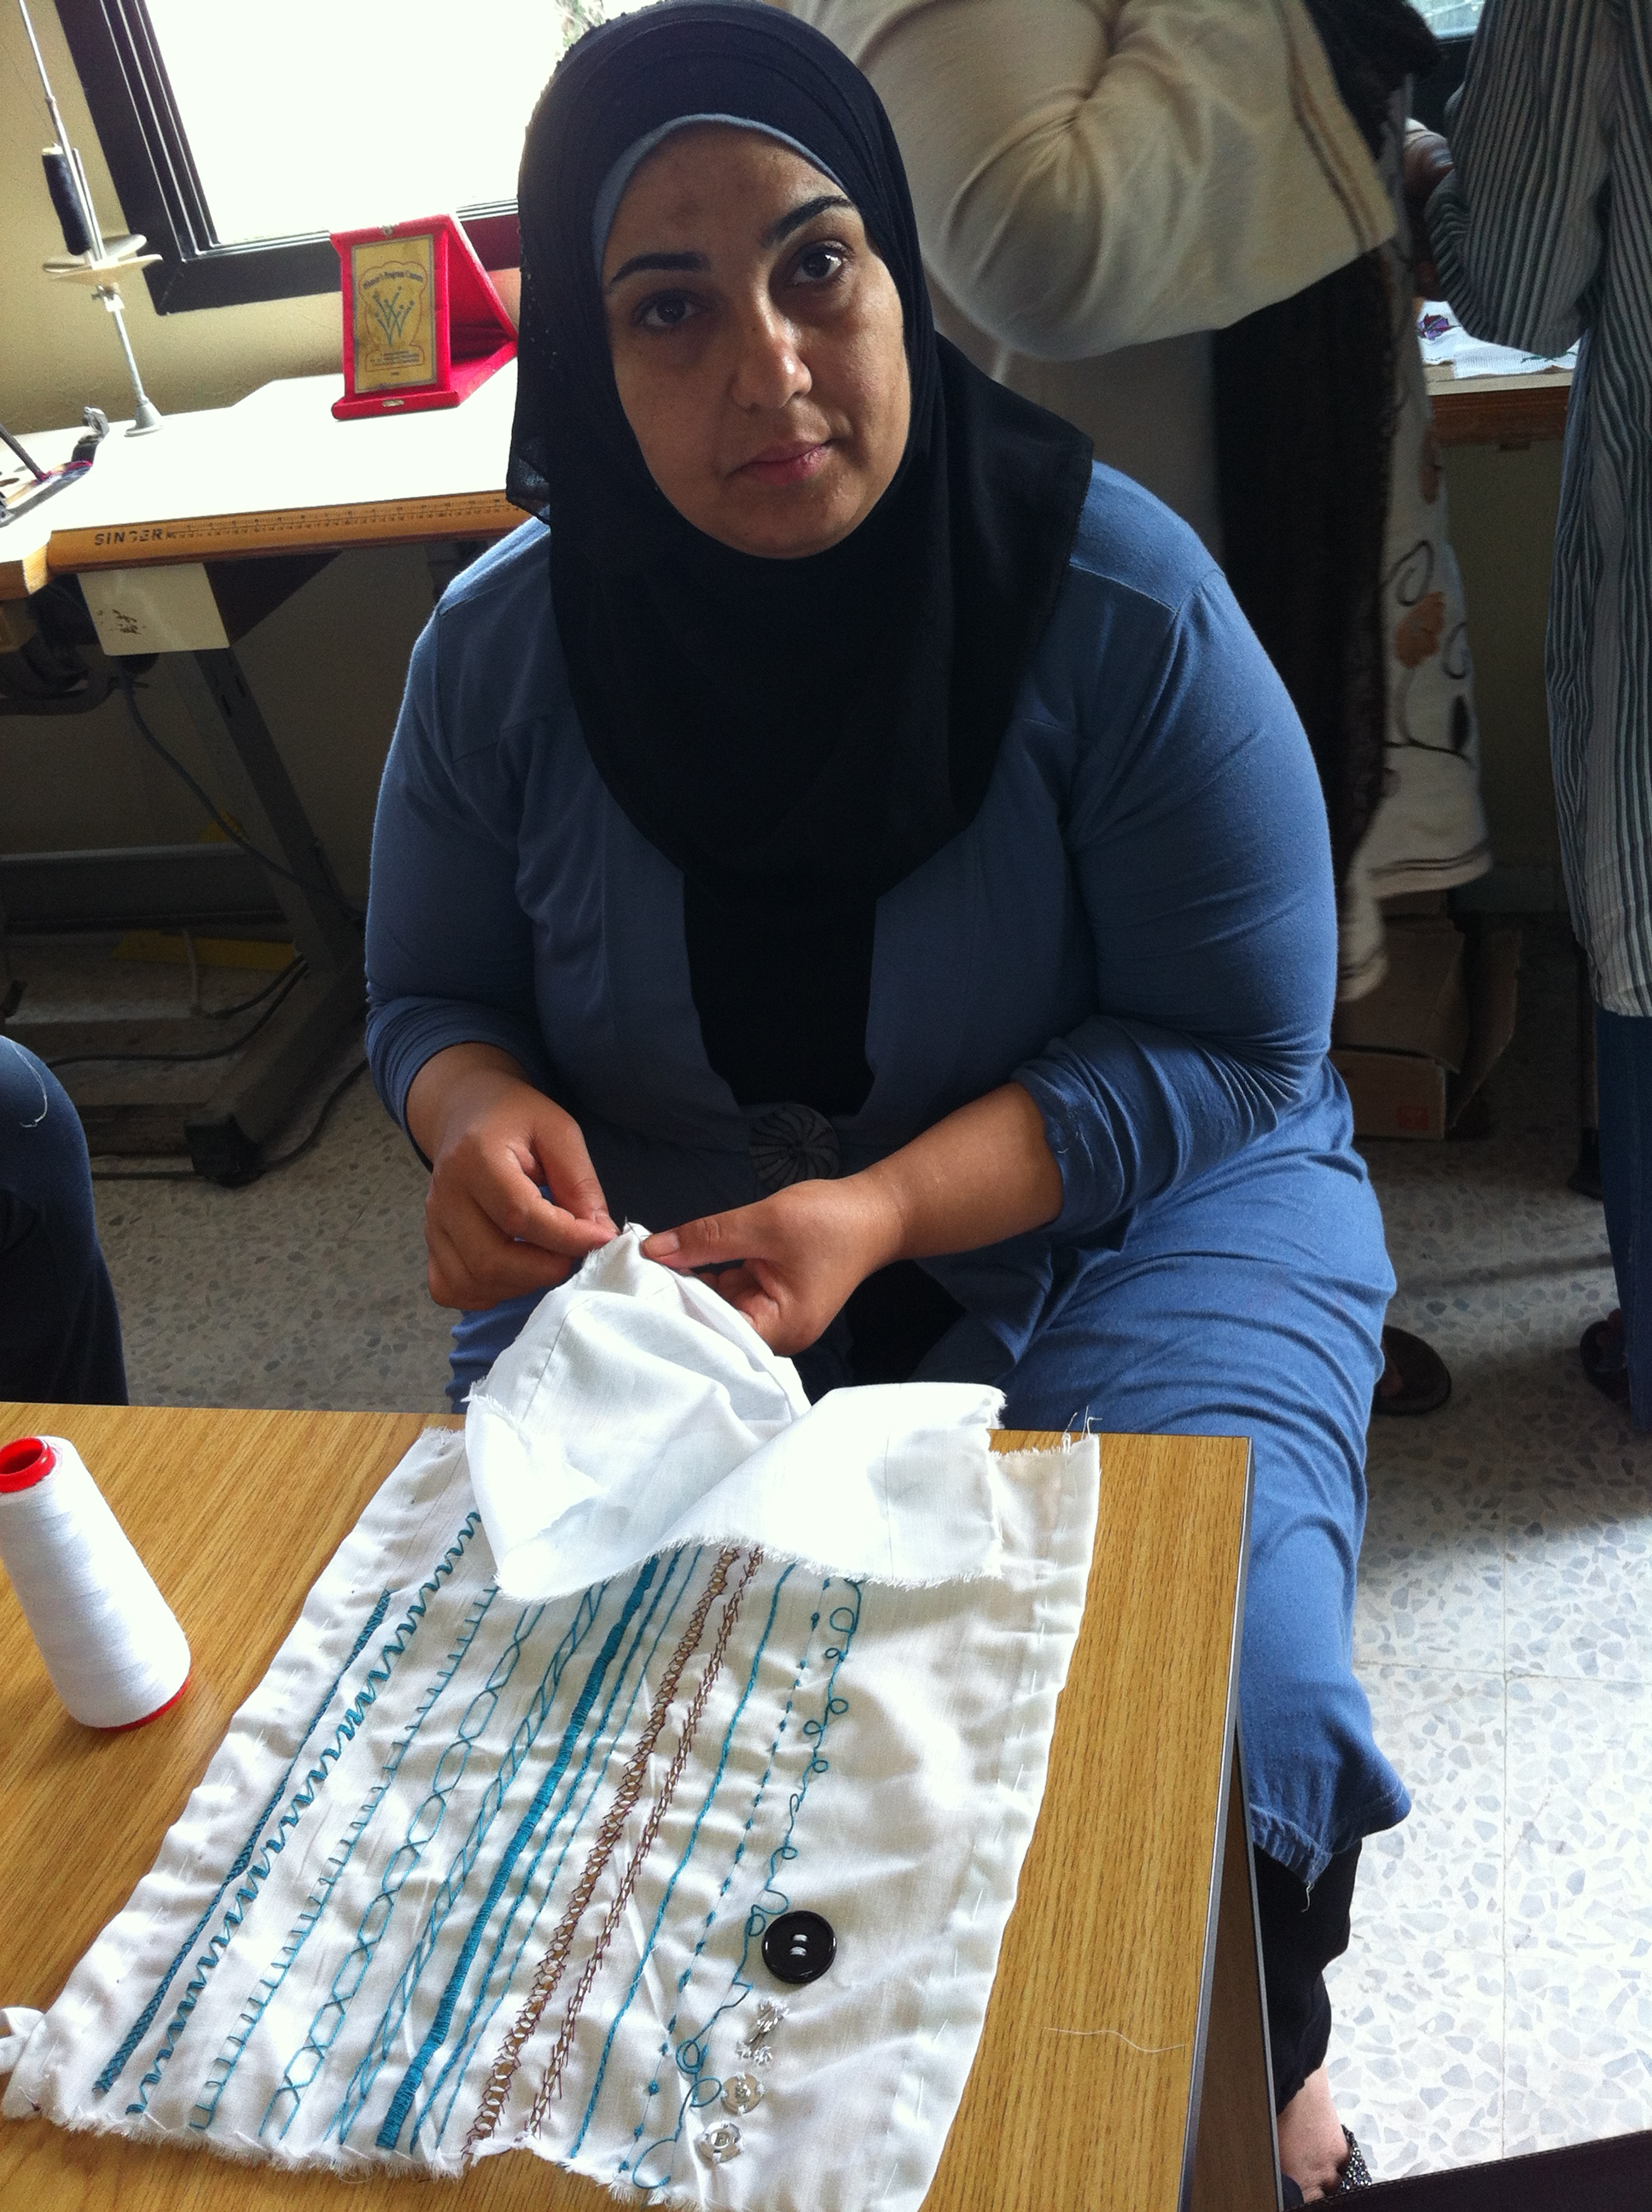 Mme Tamam Khaled Jammal - 38 years old - Living in Bourj Al Chamali Camp -She's a mother of 3 children - She loves broidery but it's the first time that she take it as a job